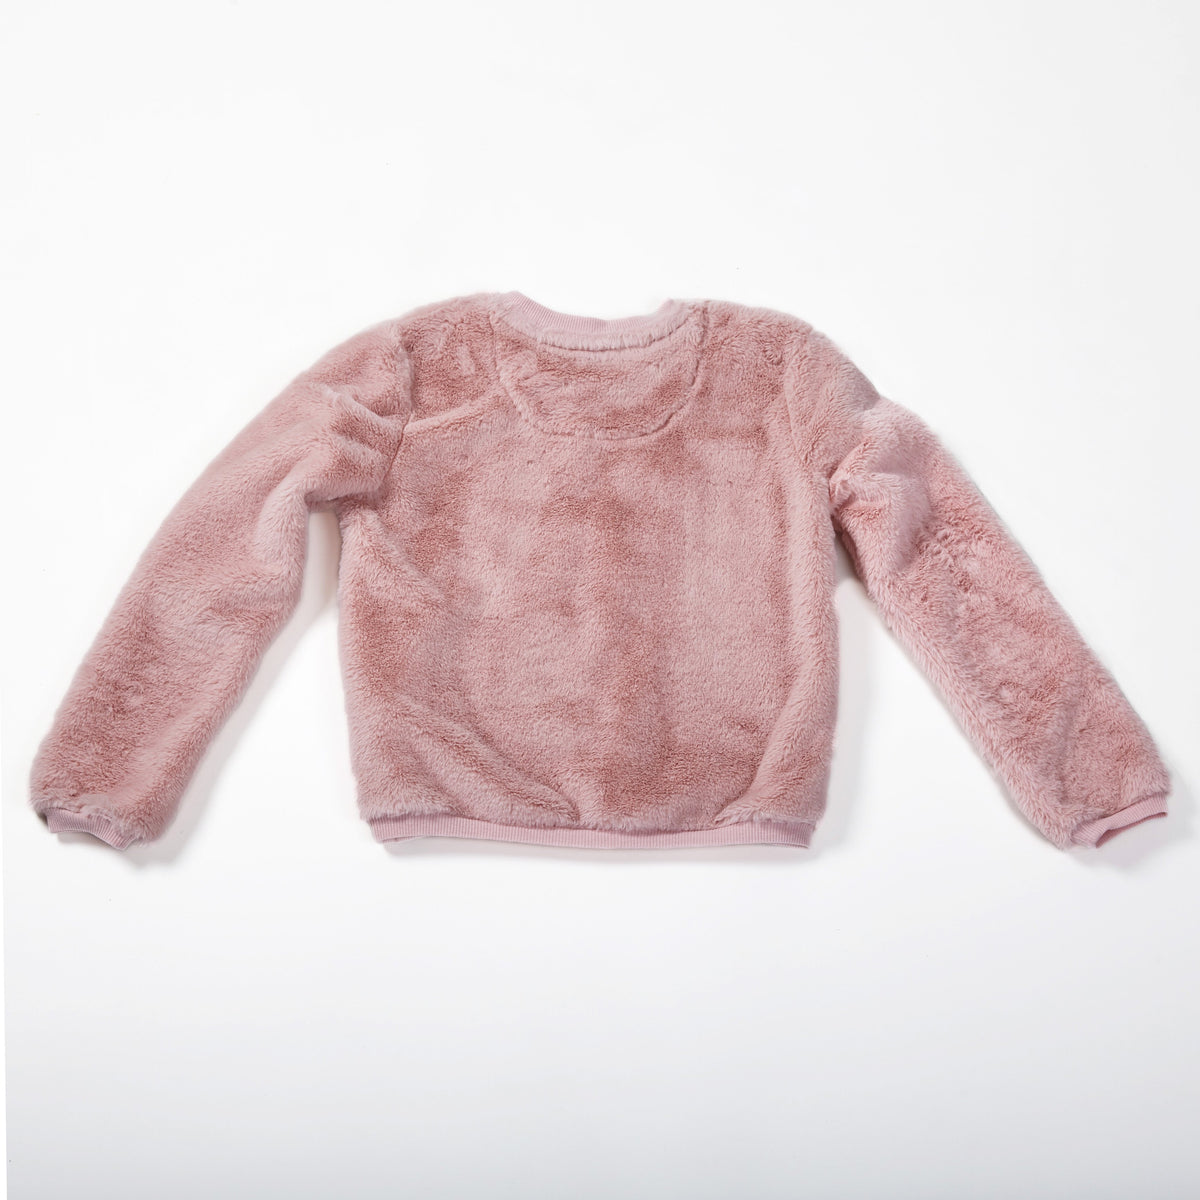 Cuddly Lace Heart Pullover Sweatshirt